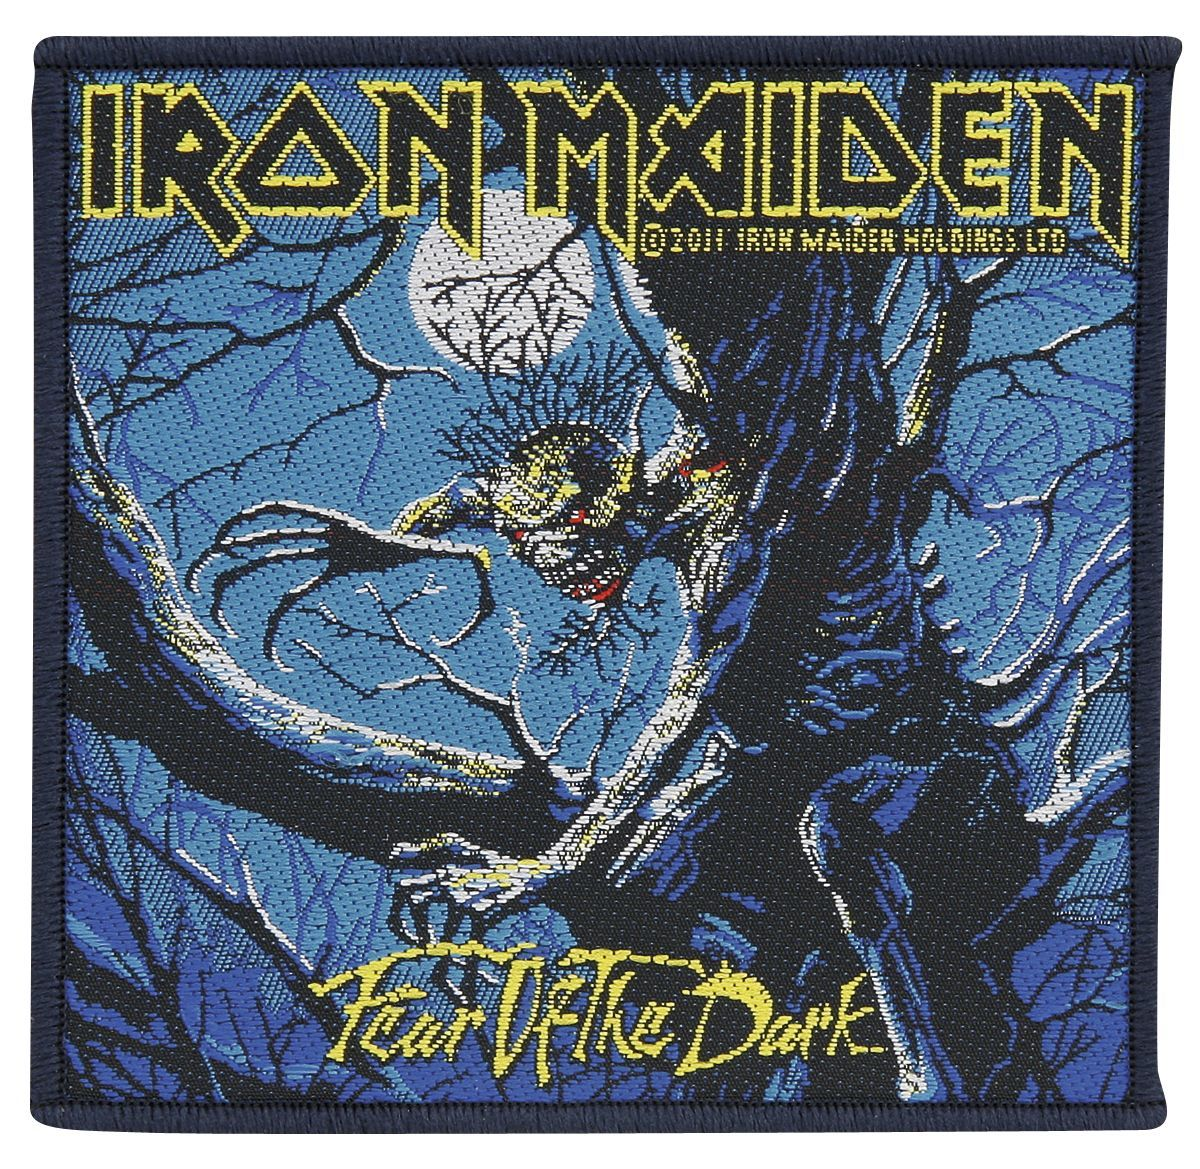 IRON MAIDEN Fear Of The Dark Patch.jpg